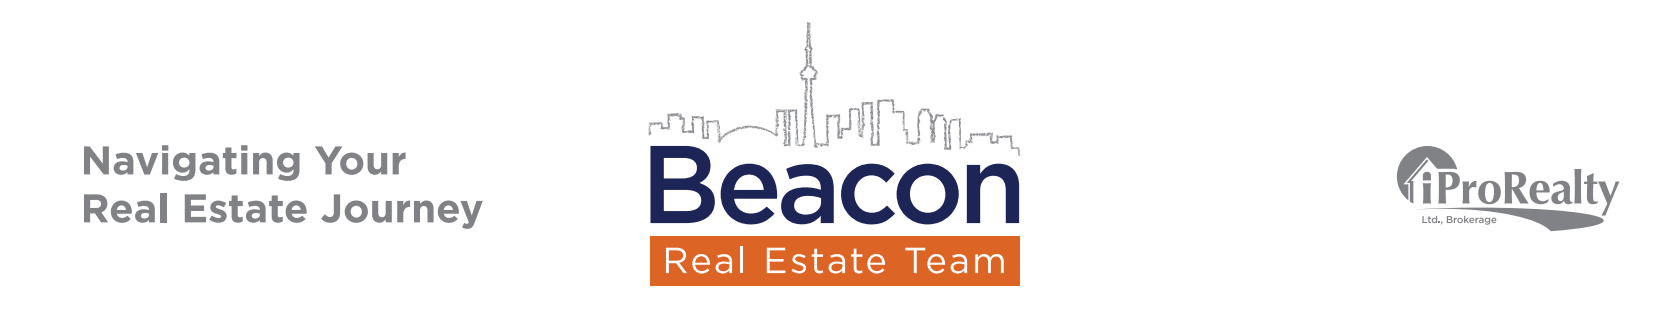 Searching for listings in Toronto